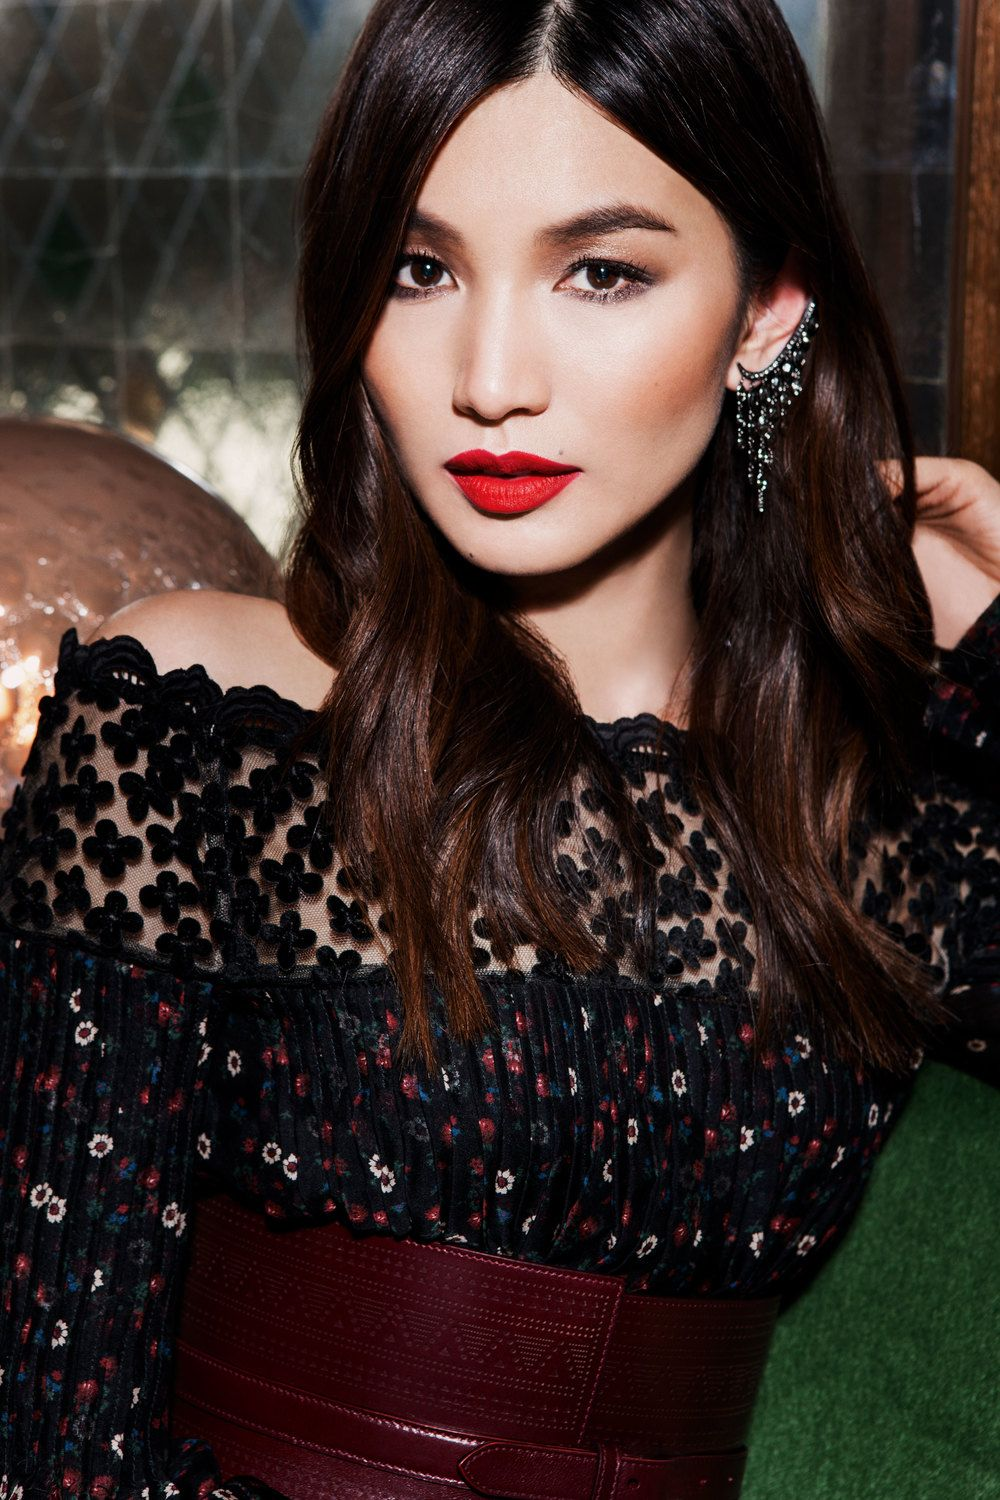 Forum on this topic: Morissette Amon (b. 1996), gemma-chan-born-1982/